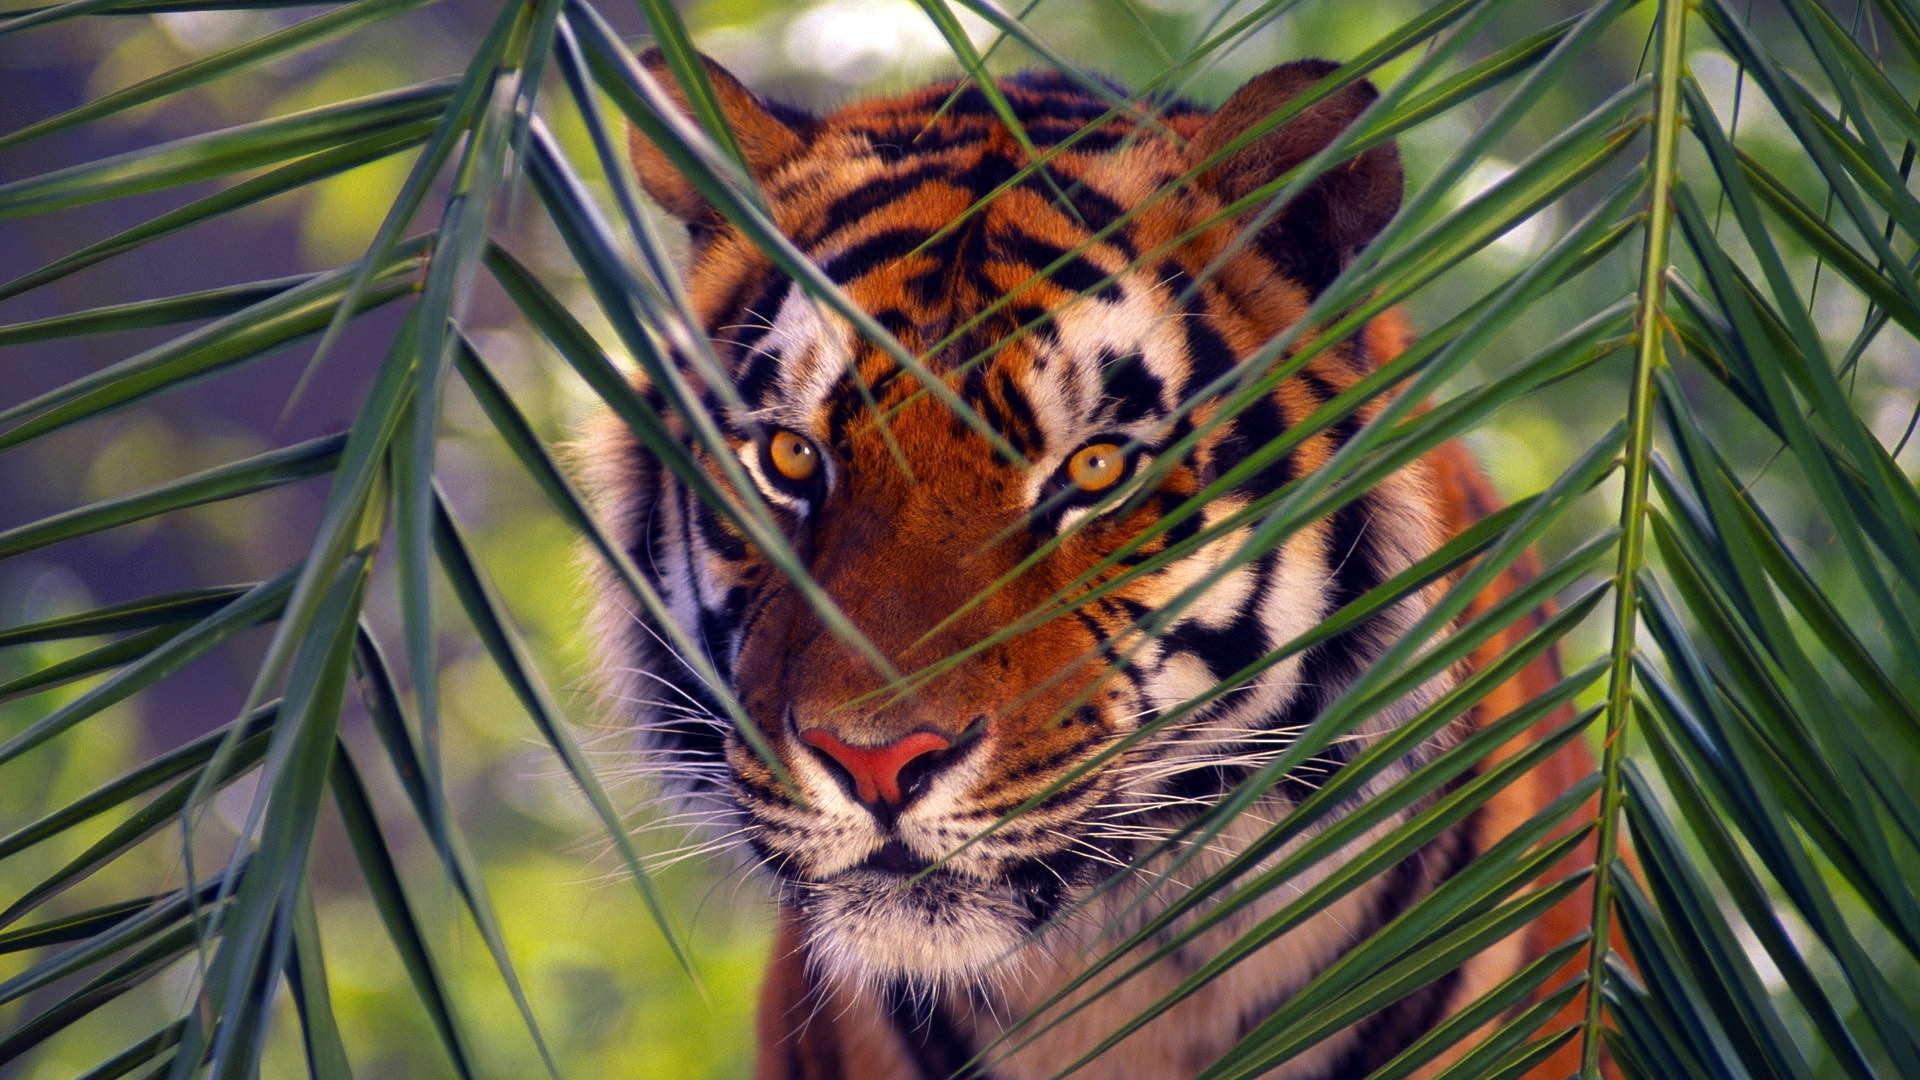 44332 download wallpaper Animals, Tigers screensavers and pictures for free